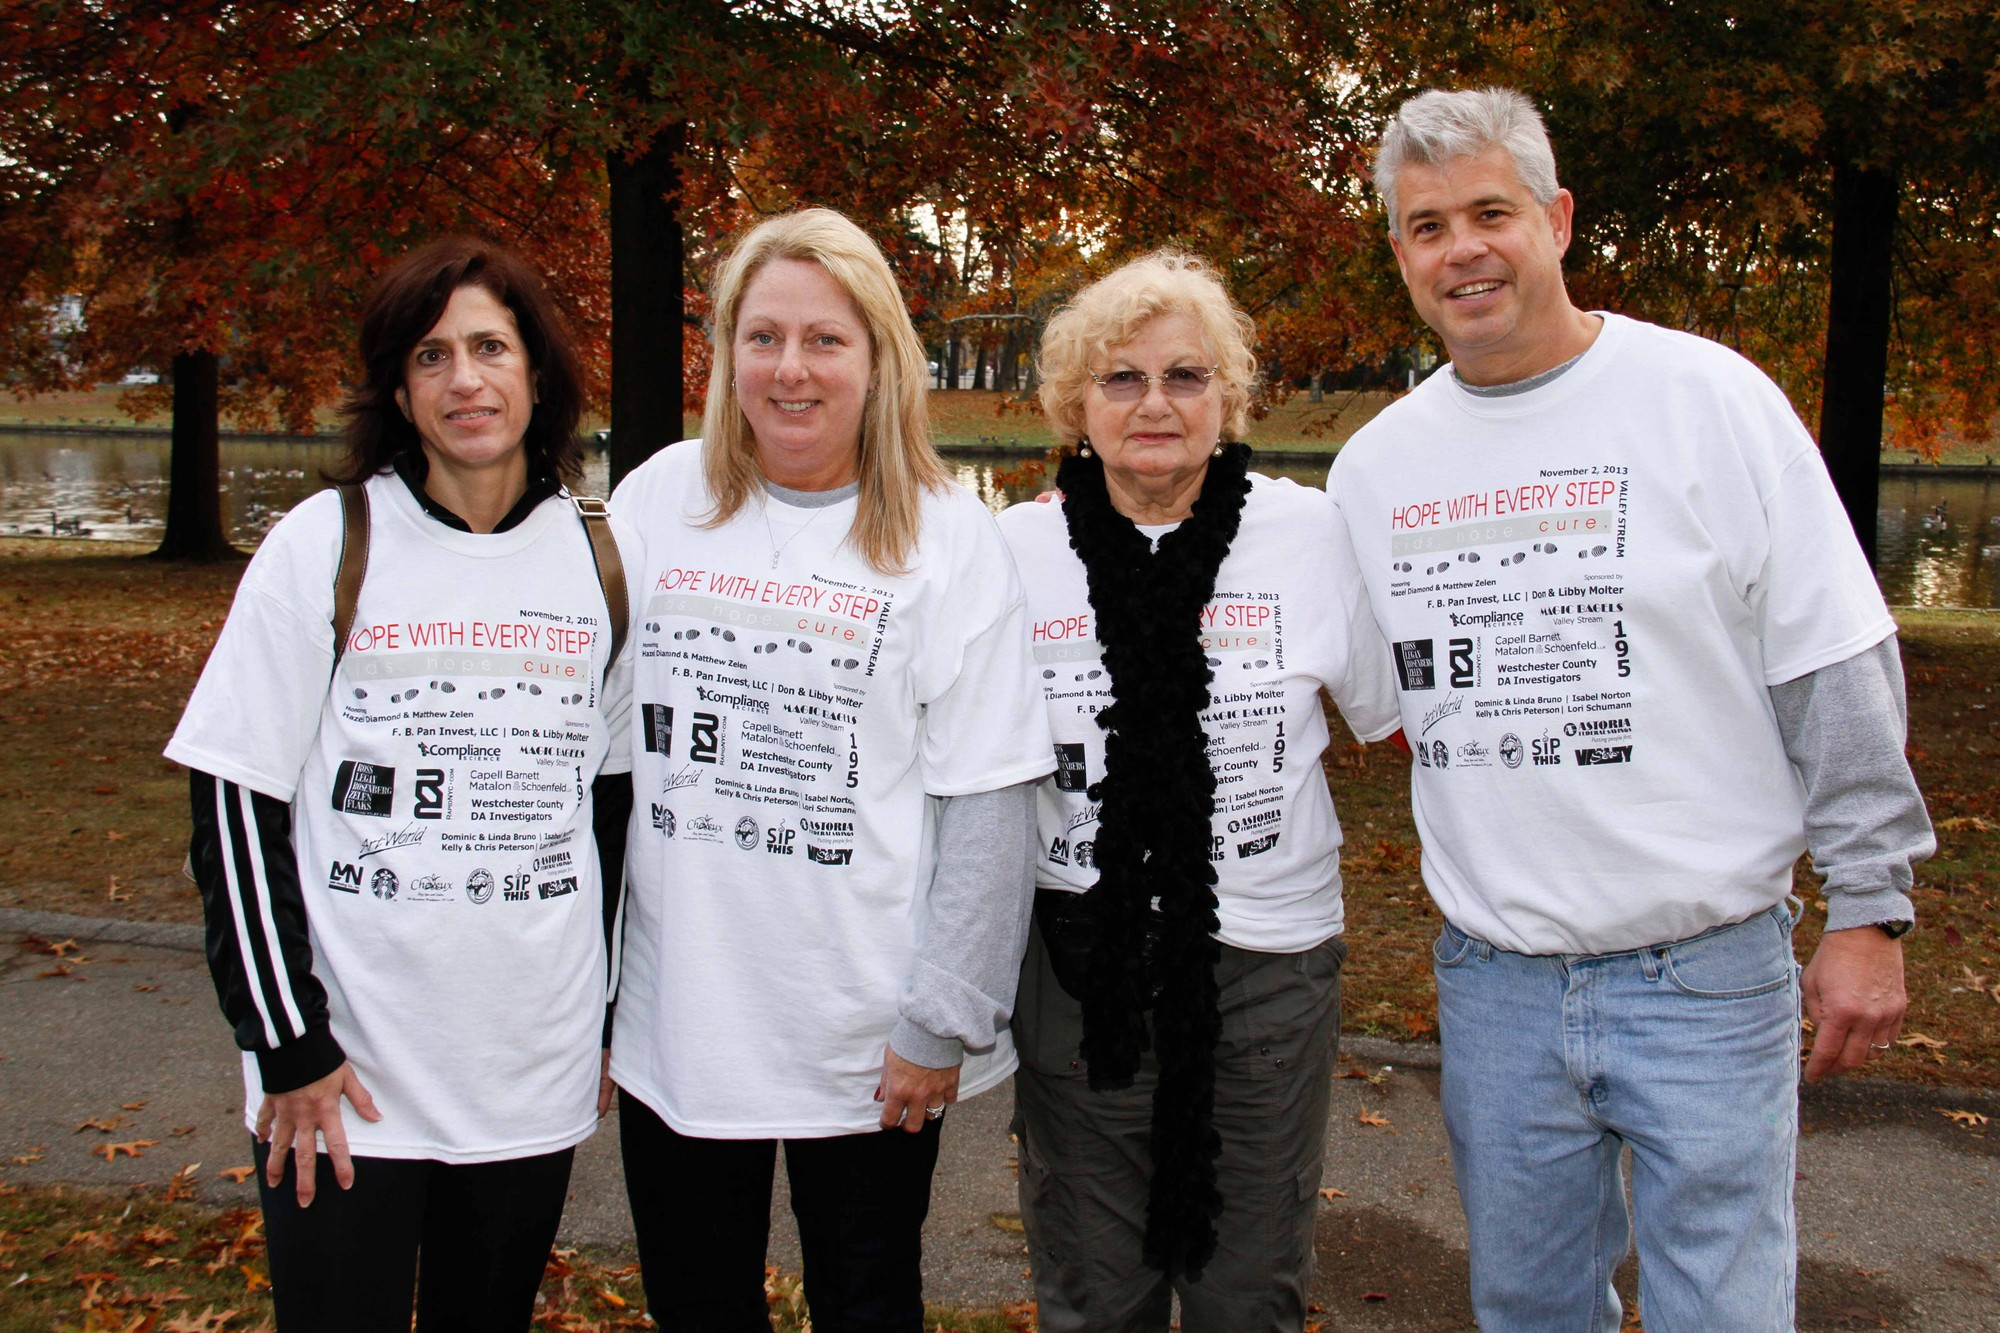 Hosts of the Walk, from left, Debbie Zelen, Claudia Rohlinger, Brigitte Diamond and Michael Rohlinger, are working to help children with ataxia telangiectasia, a rare disease that affects children.